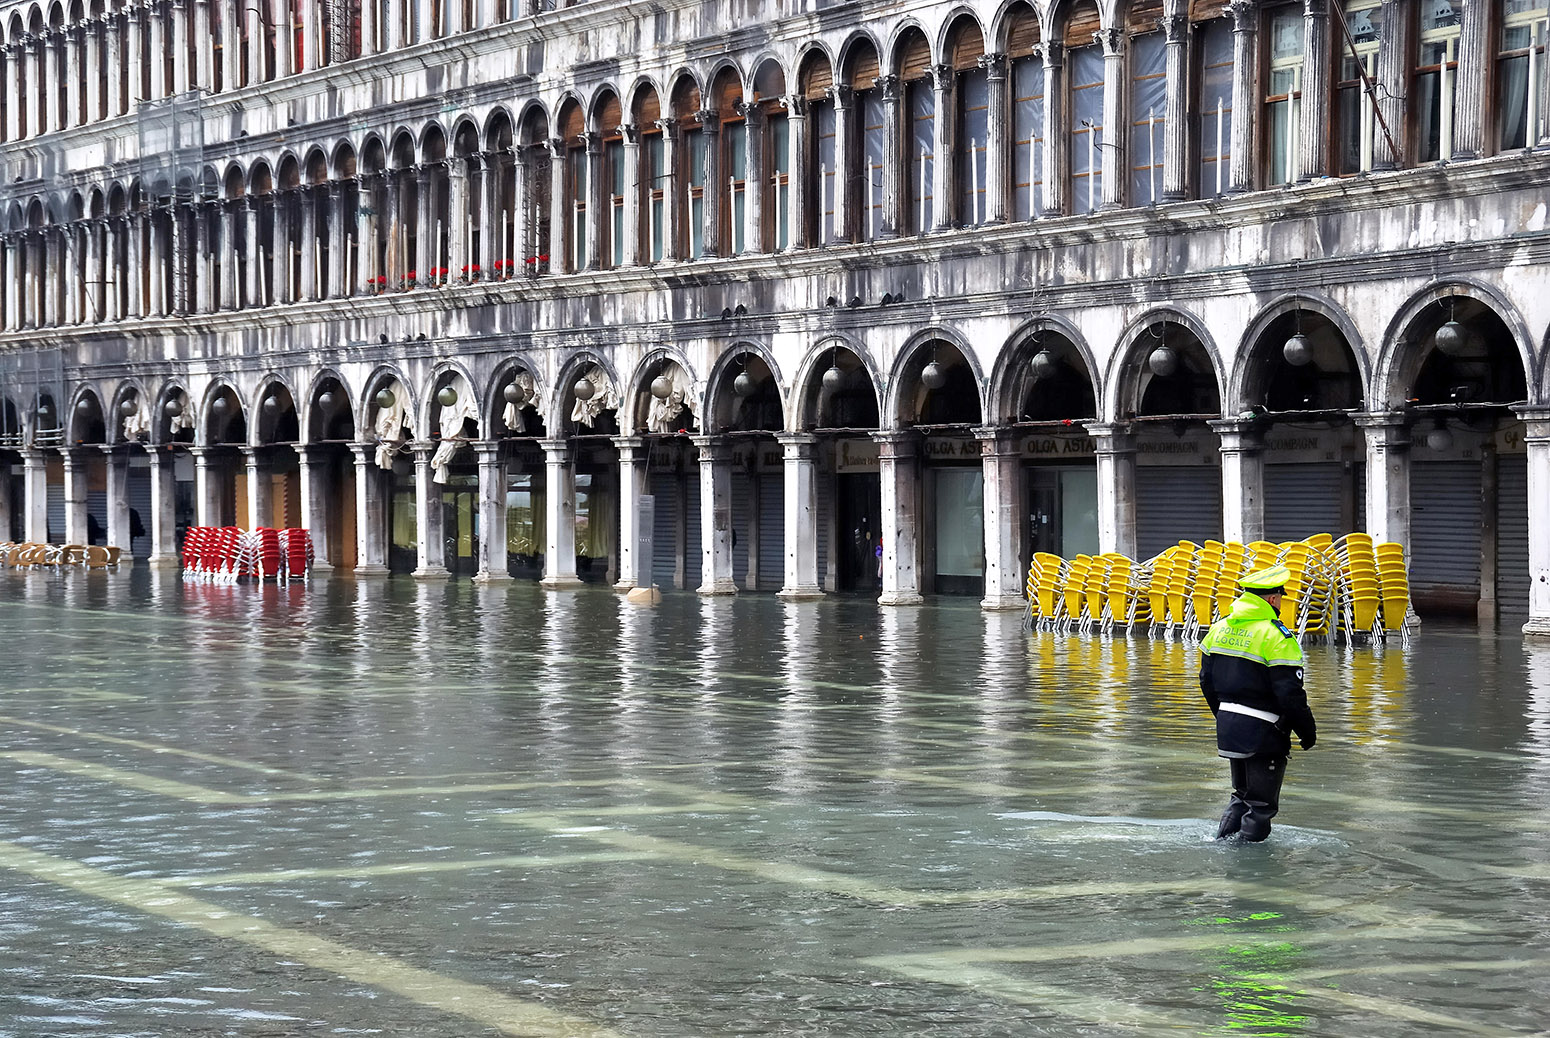 High water in Piazza San Marco, Venice, Italy. Credit: Ferdinando Piezzi / Alamy Stock Photo. HNH8M3